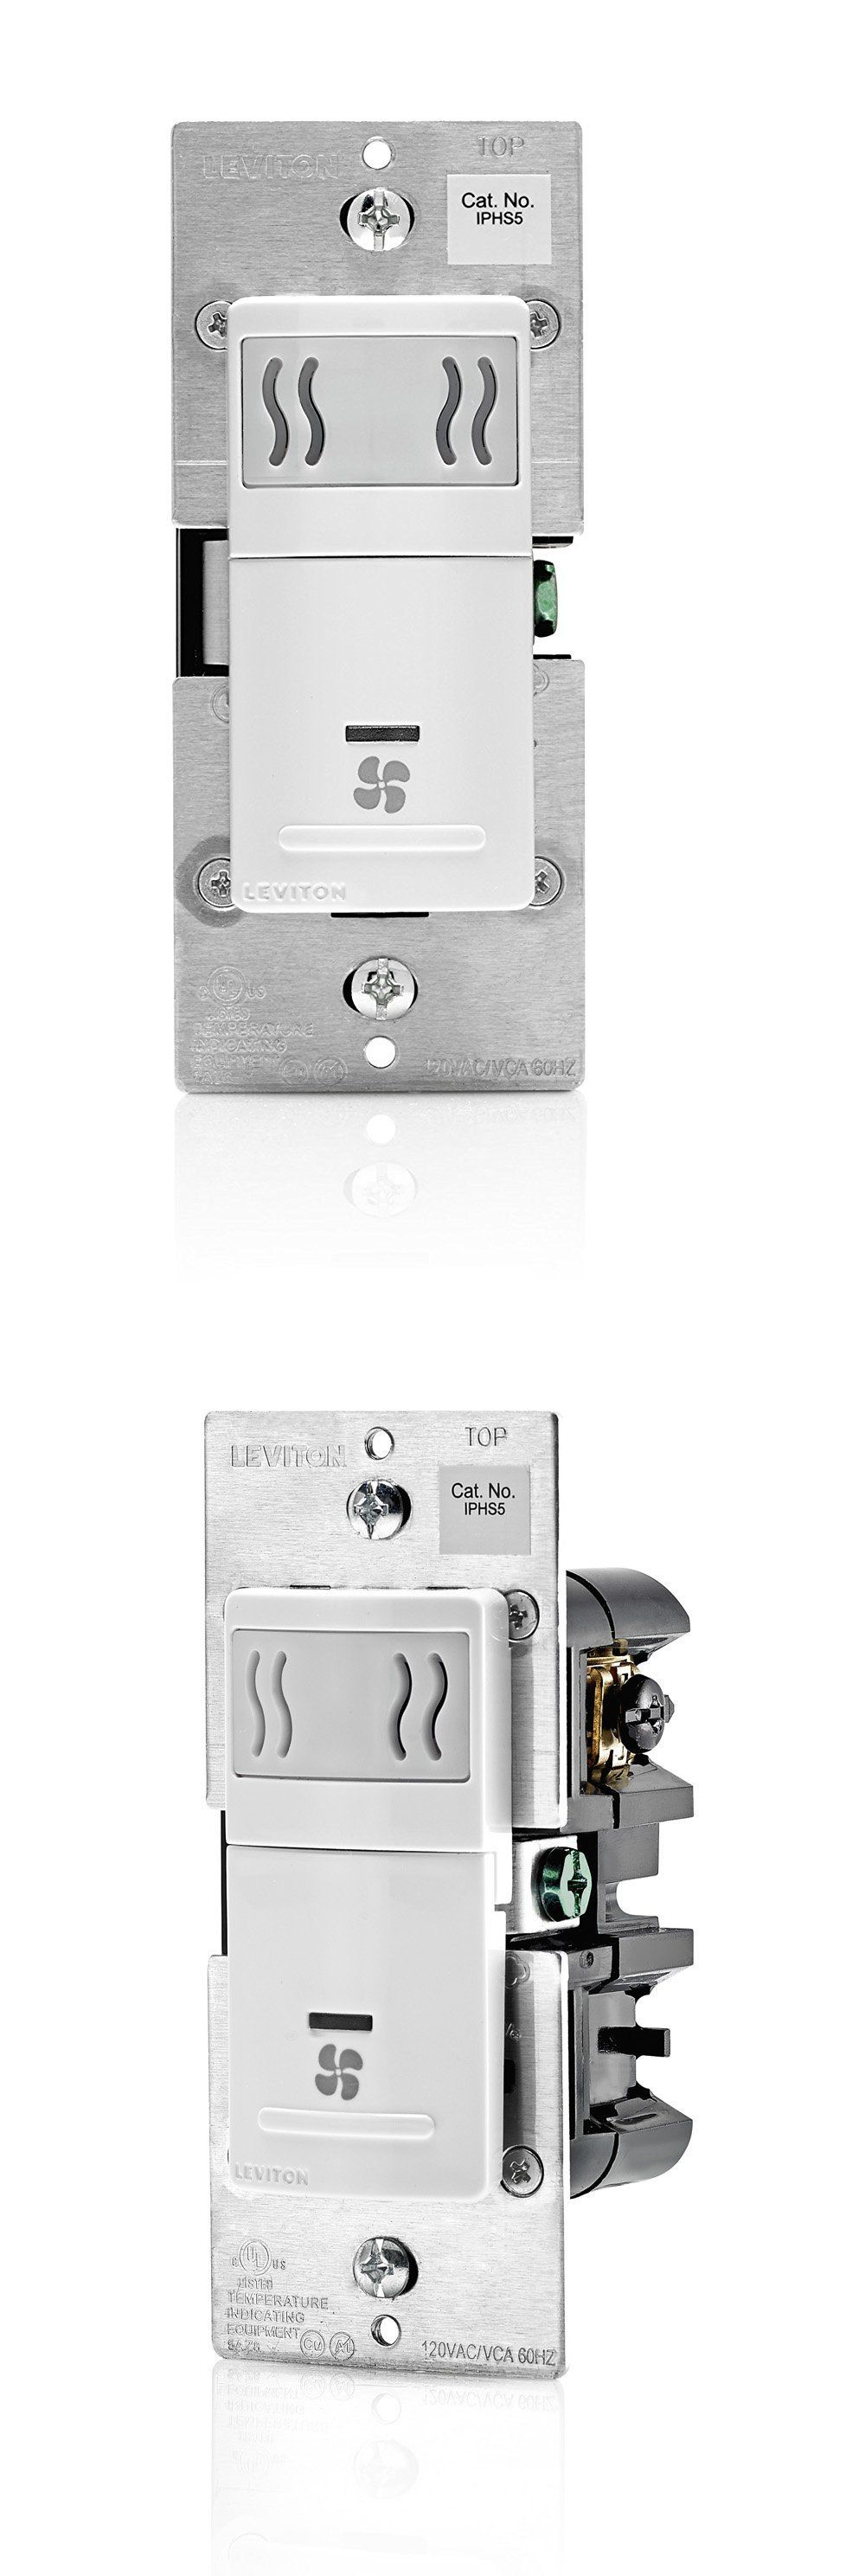 Enchanting Leviton Electrical Switches Pattern - Electrical System ...